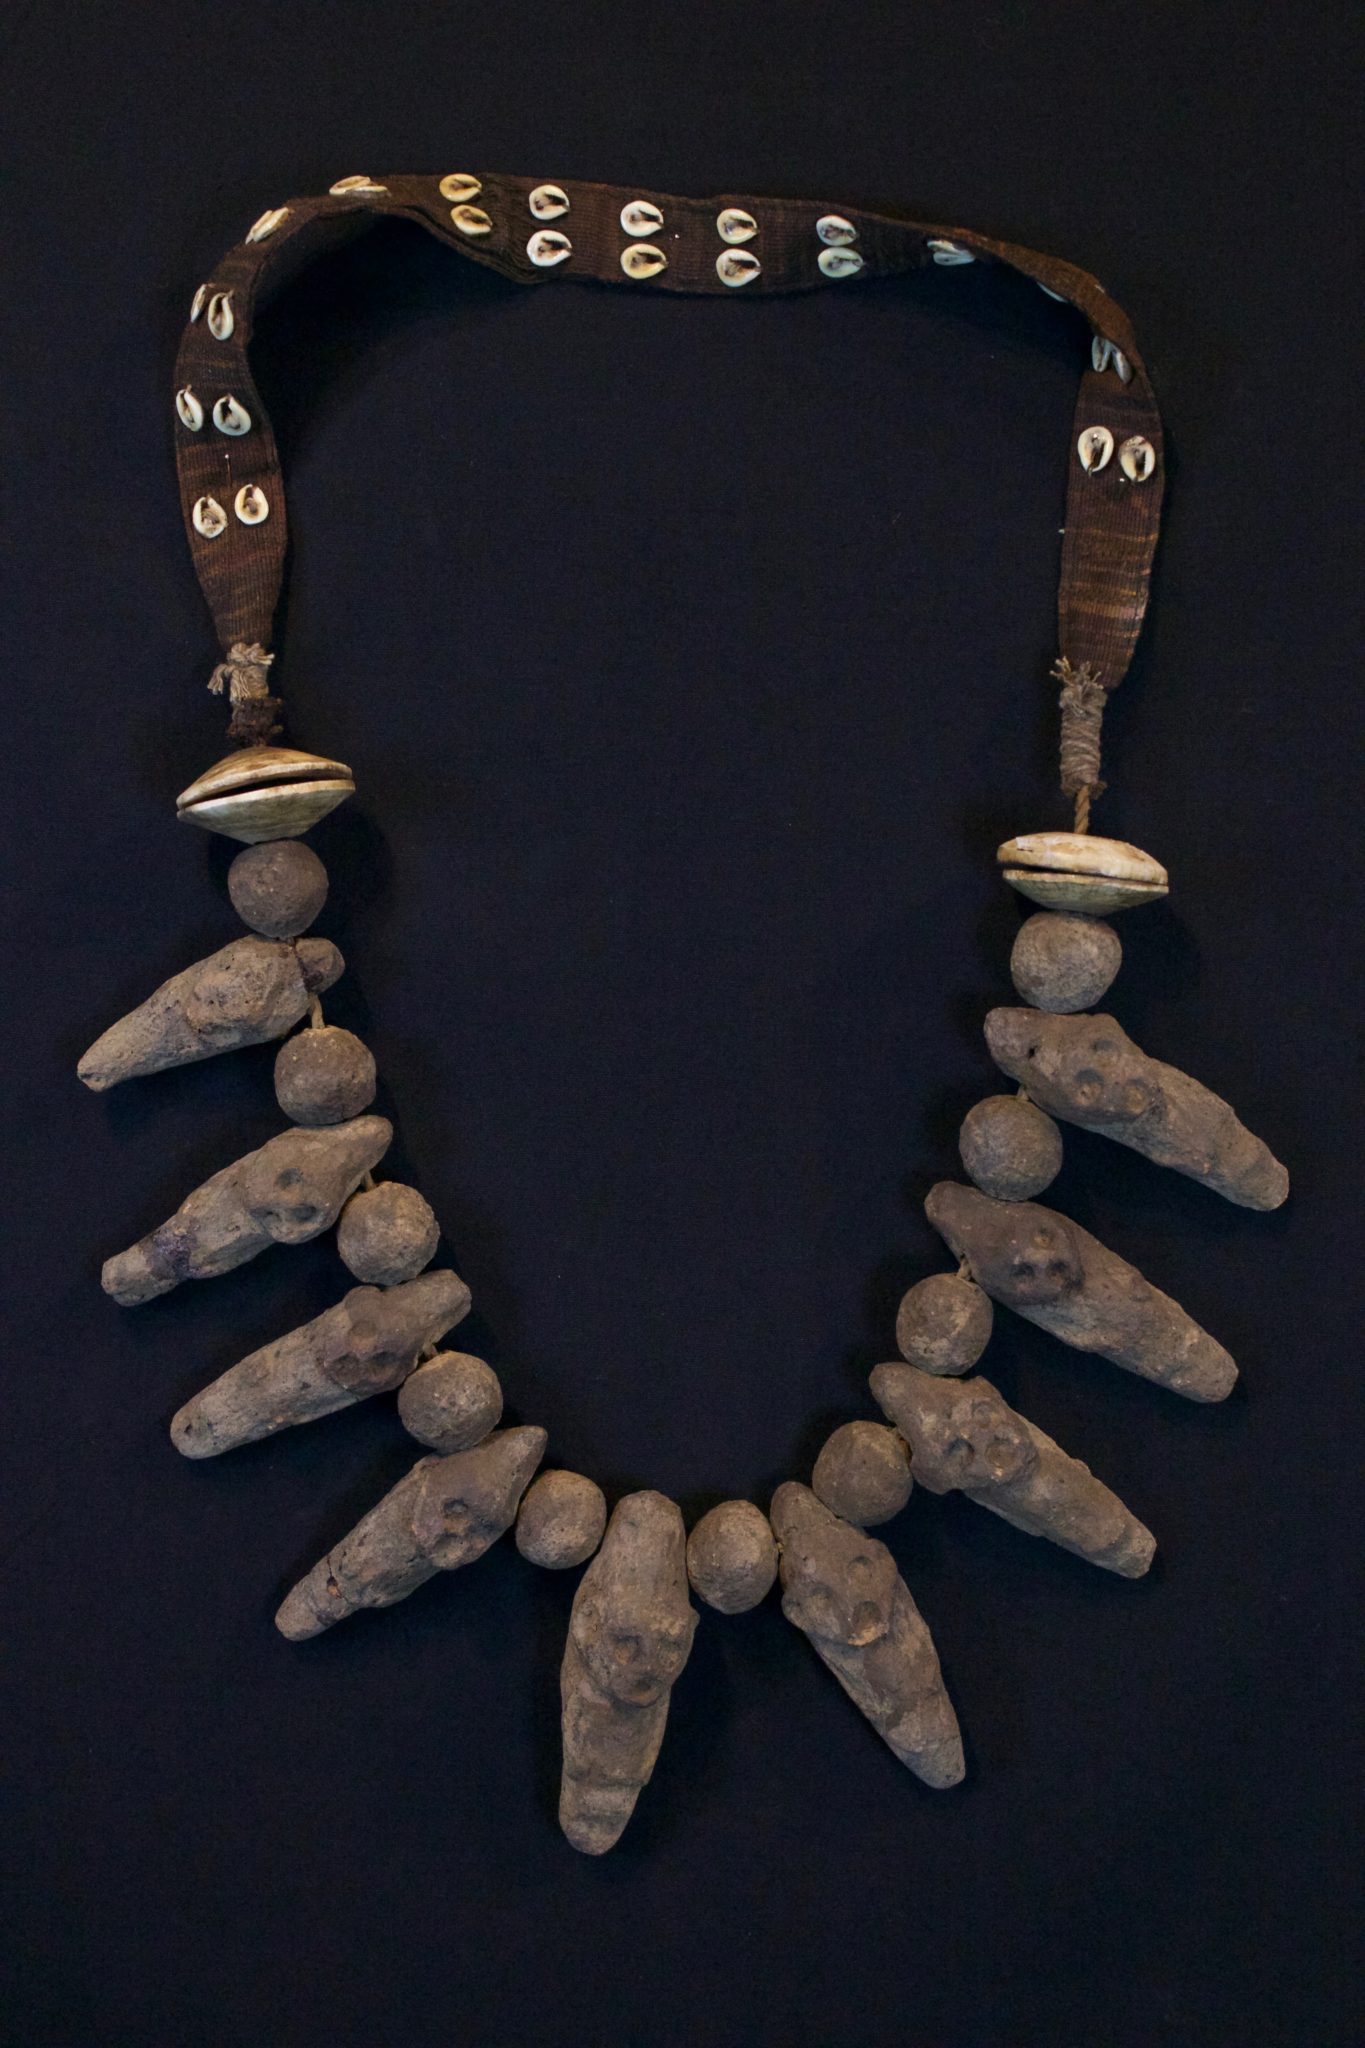 """Shaman Amulet Necklace, Timor Island, Lesser Sunda Islands, Indonesia, Early 20th c, Ceramic stone figures and beads, shell, cotton. Worn by the shaman for healing ceremonies. 20 ½"""" x 11"""" x 1 ¾"""", $650."""